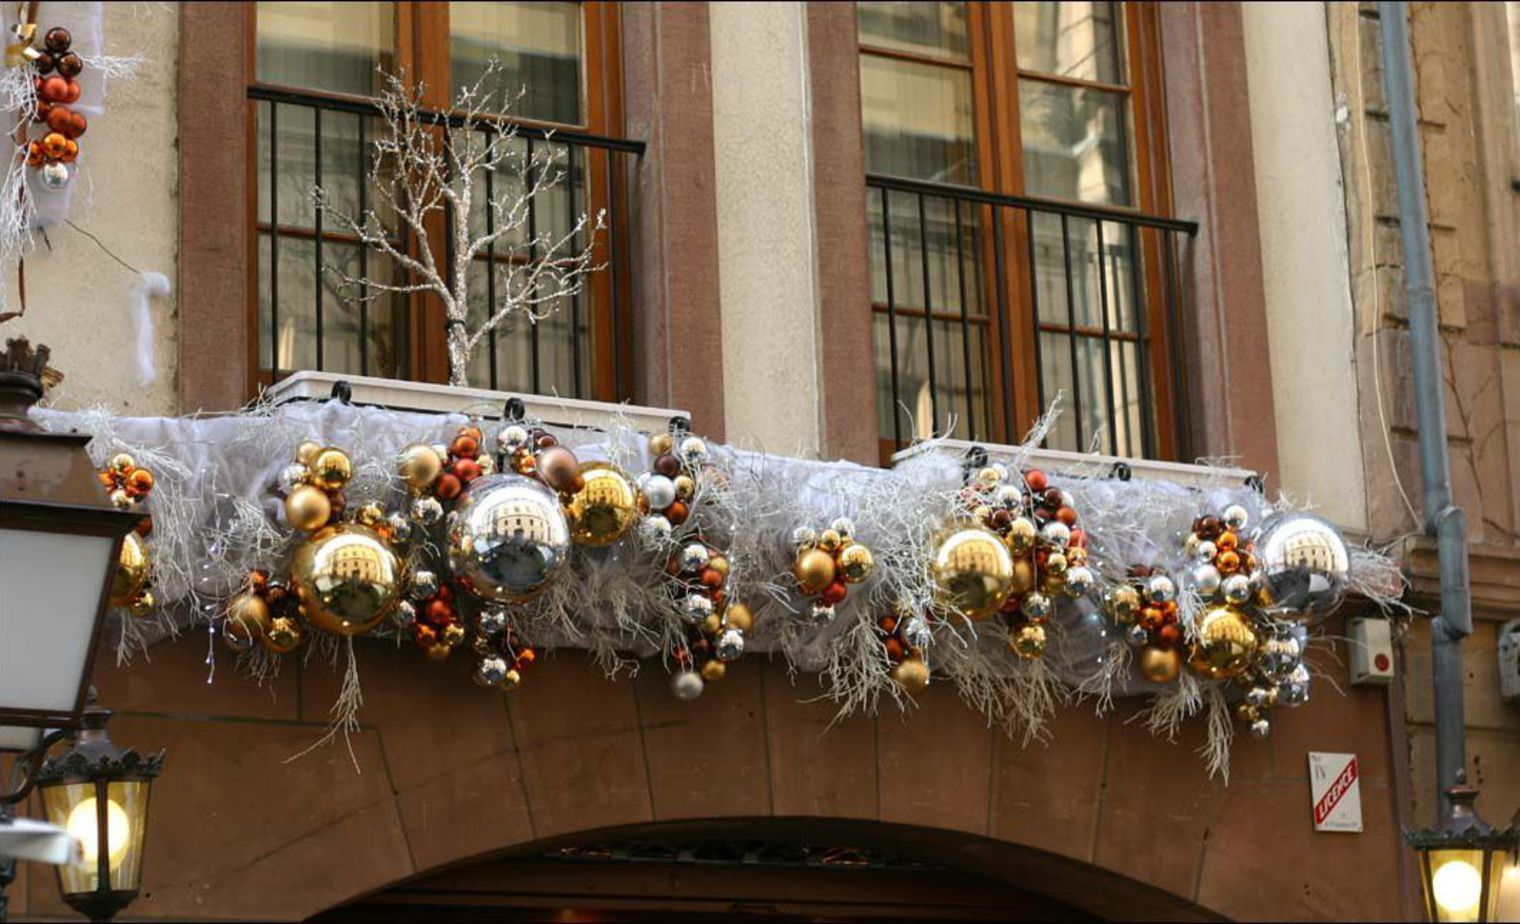 D coration noel exterieur balcon exemples d 39 am nagements for Decoration de fenetre exterieur pour noel